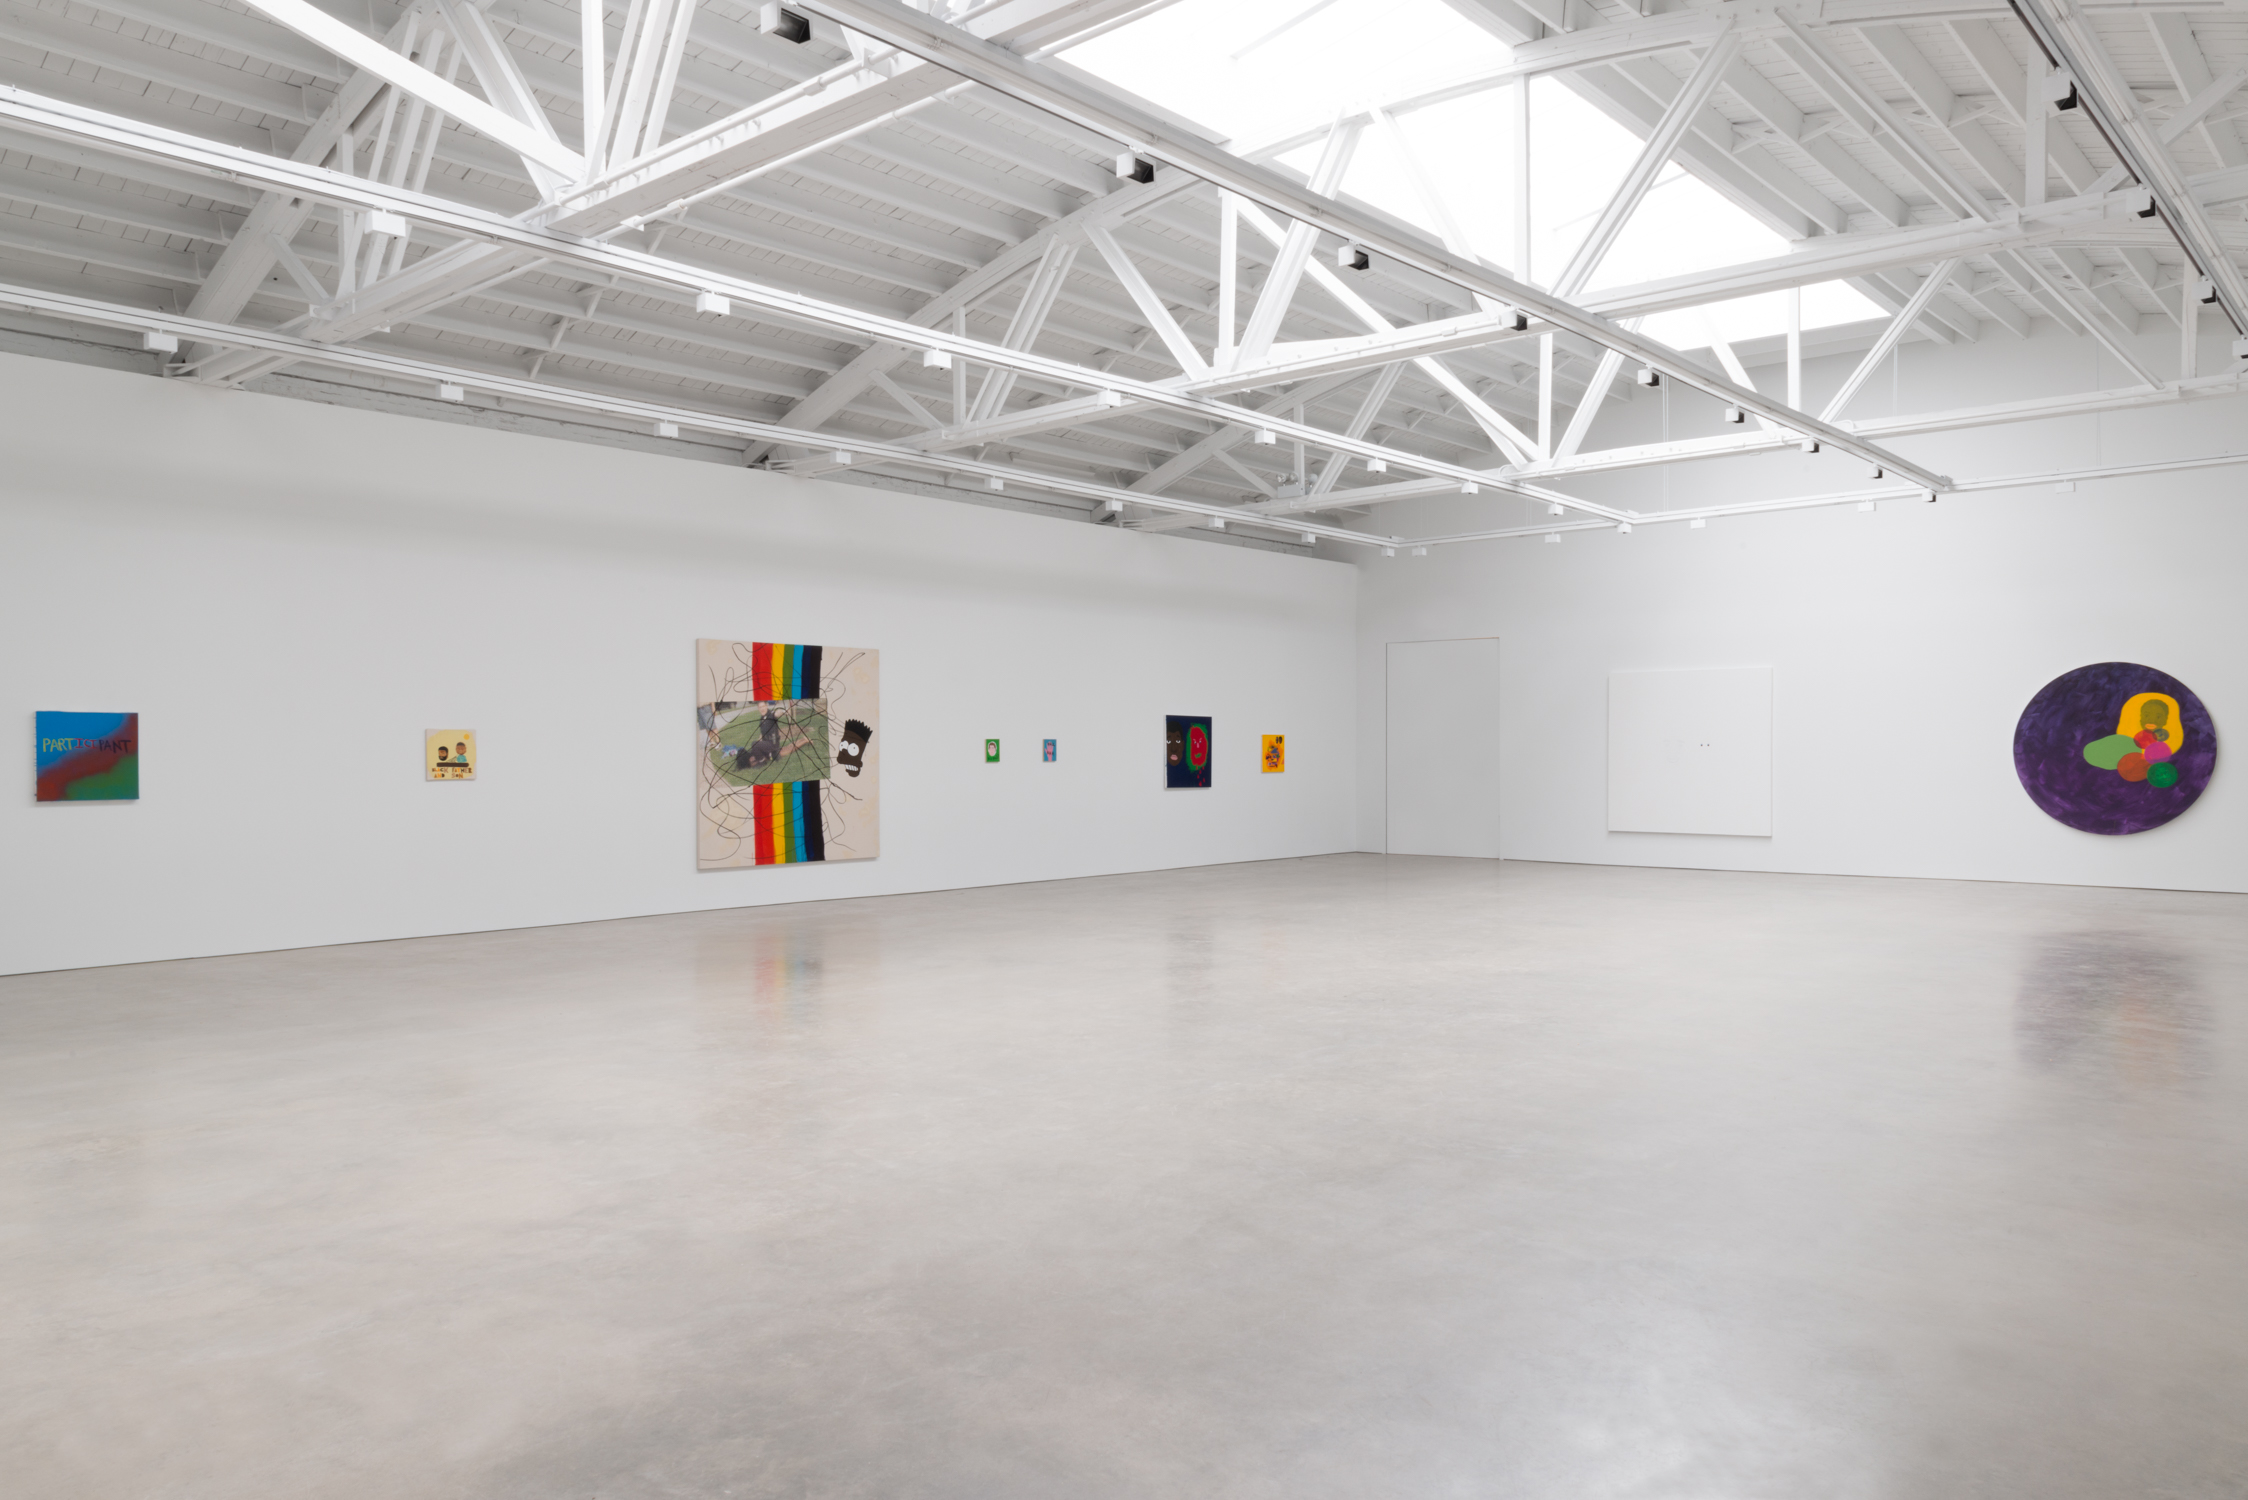 David Leggett  Their funeral, our dance floor  2017 Installation view Shane Campbell Gallery, South Loop